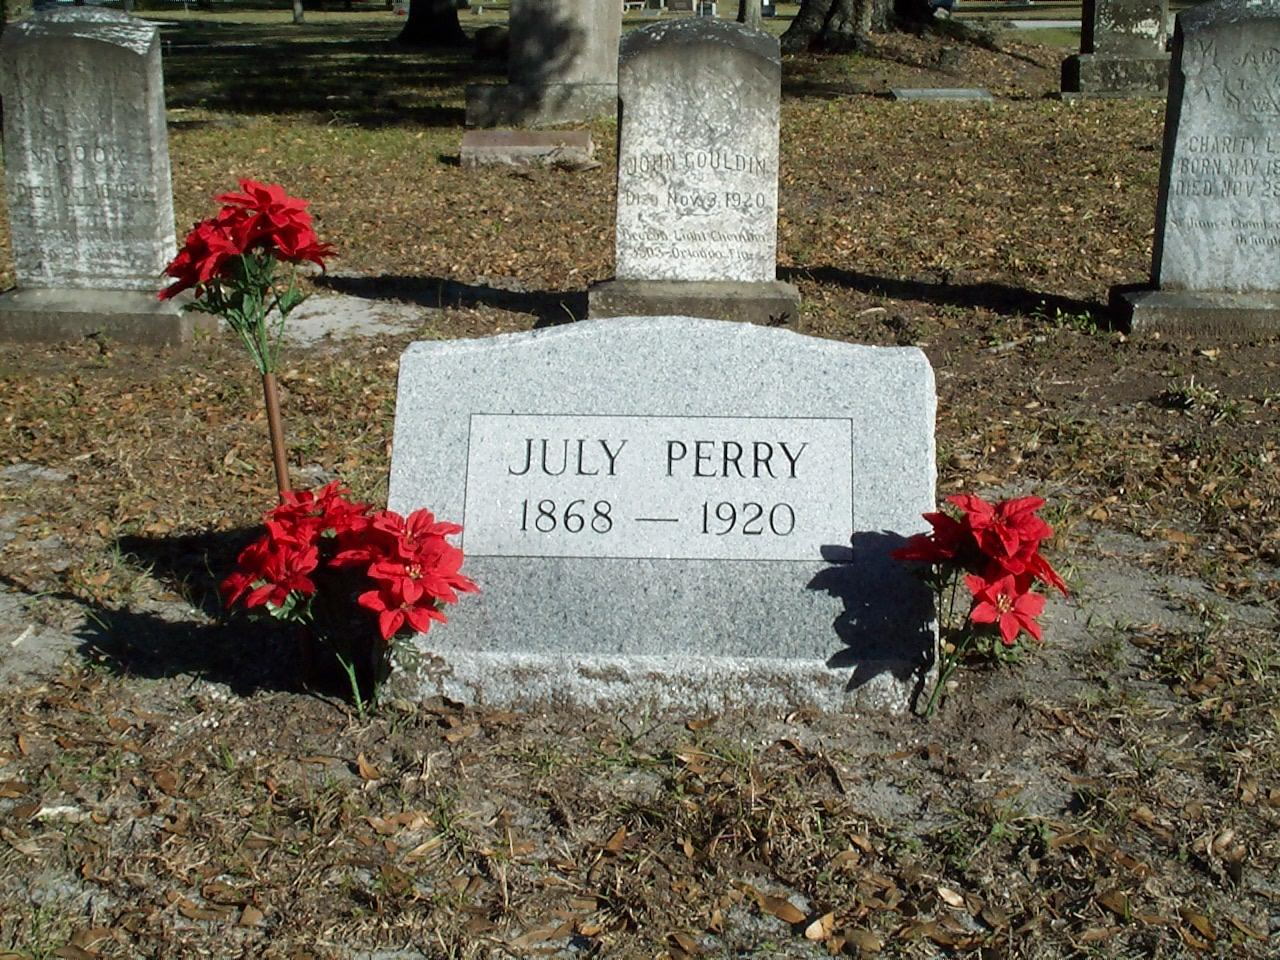 Ocoee Massacre: Headstone For July Perry At Greenwood Cemetery · RICHES